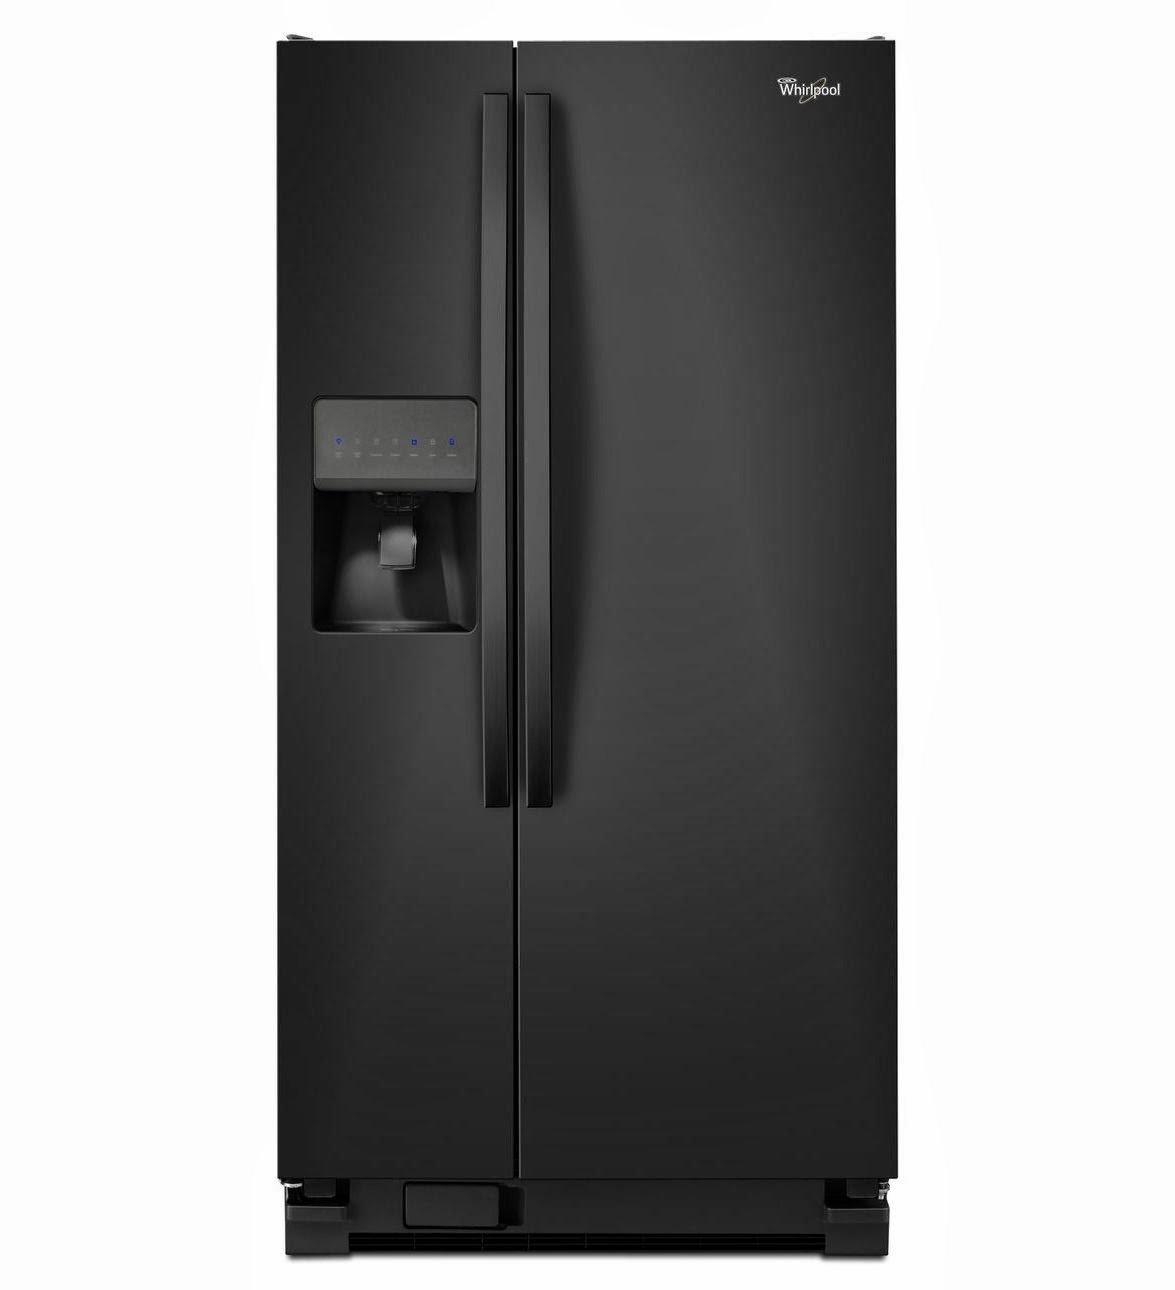 whirlpool refrigerator brand wrs322fdab black whirlpool. Black Bedroom Furniture Sets. Home Design Ideas